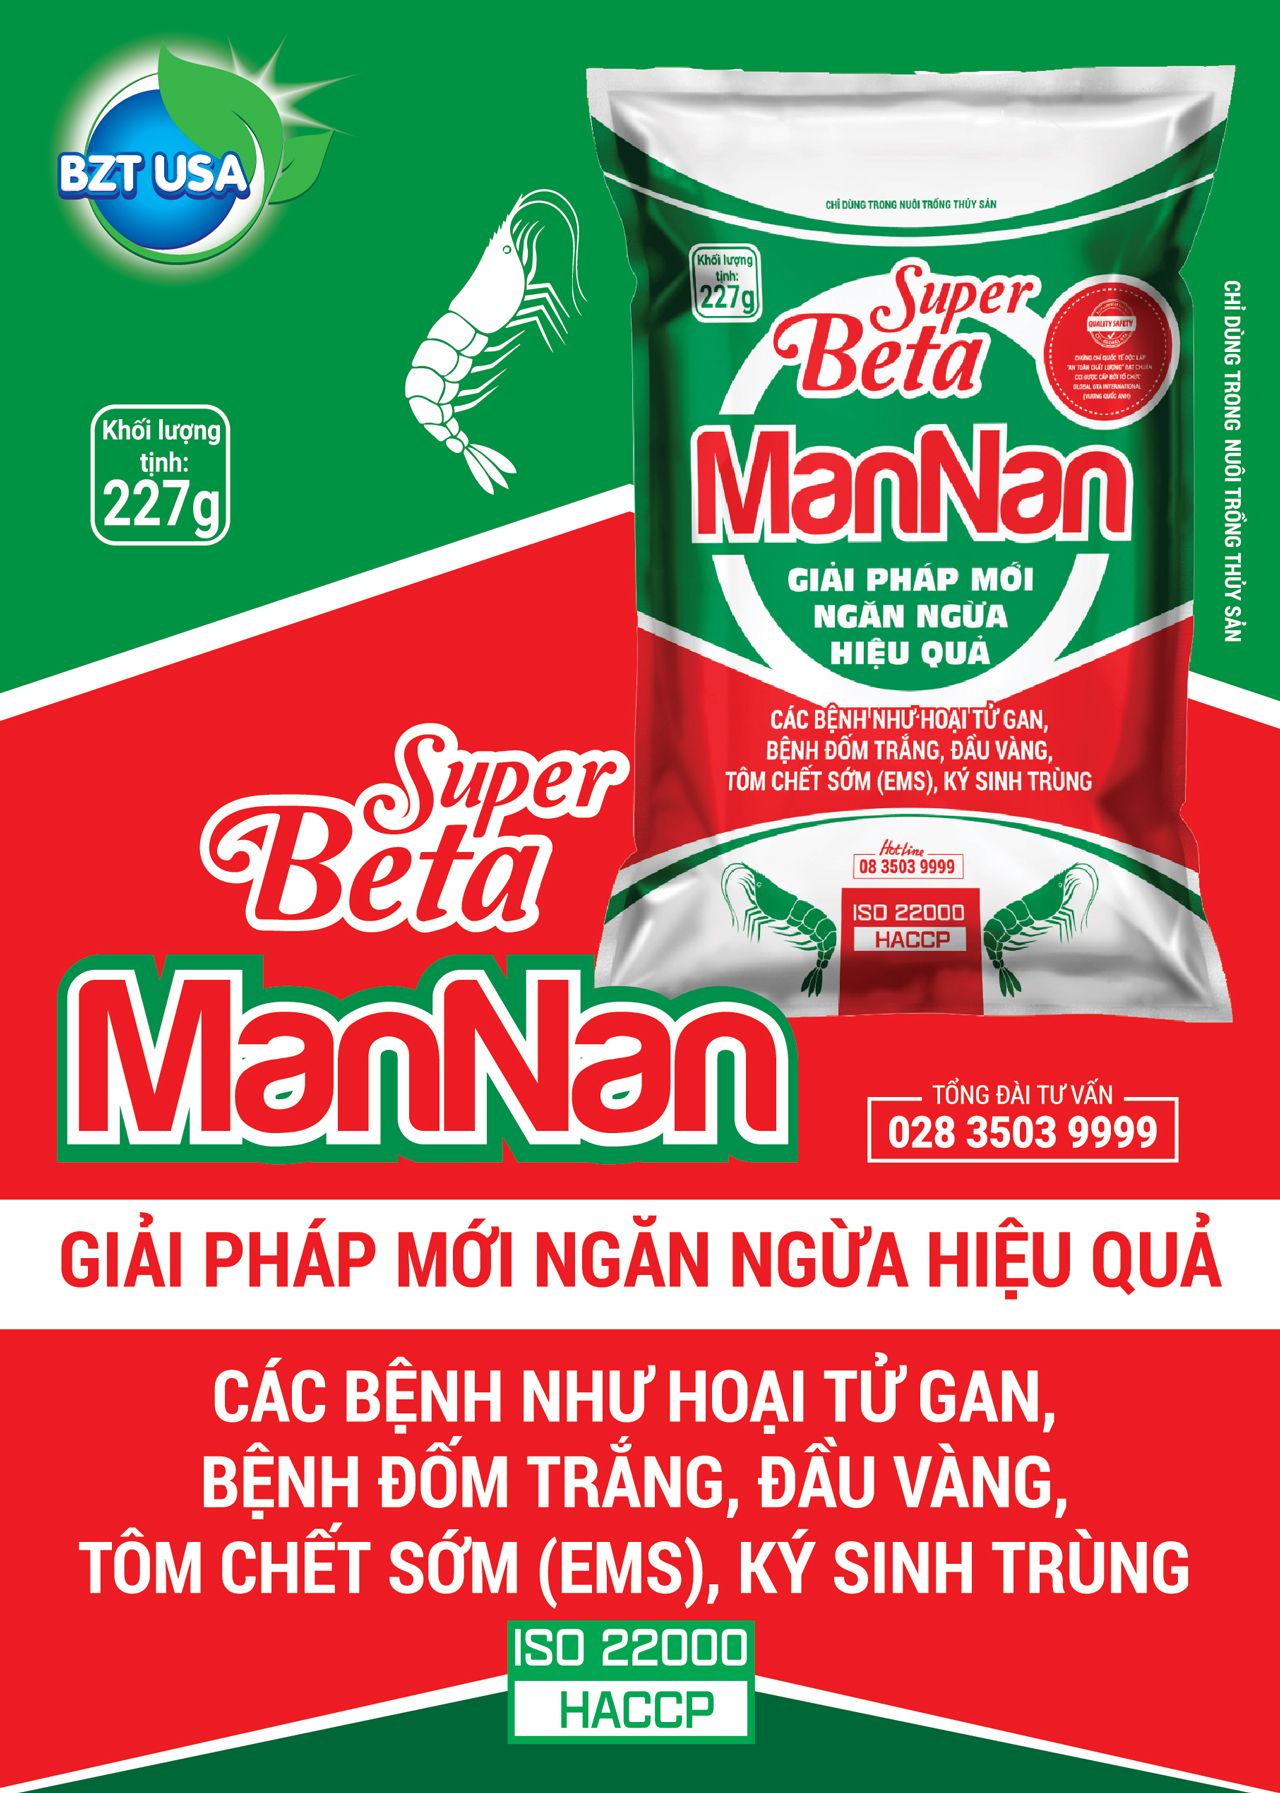 Super Beta Mannan 1280